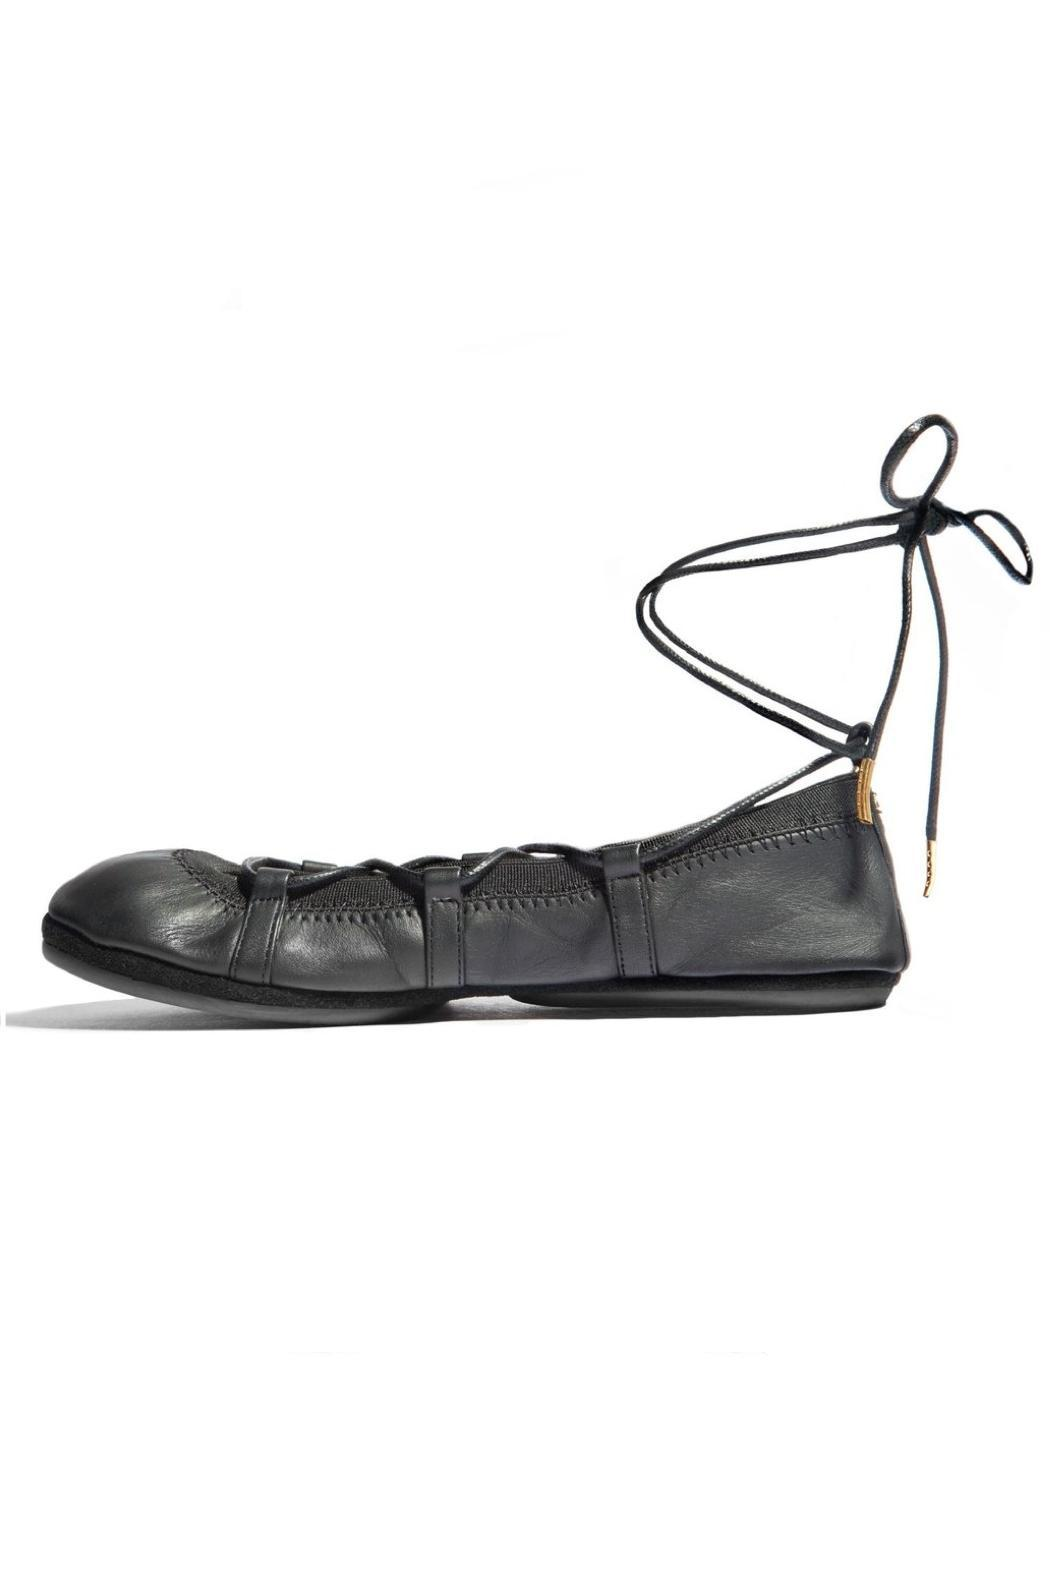 Yosi Samra Seleste Lace Up Flat - Main Image